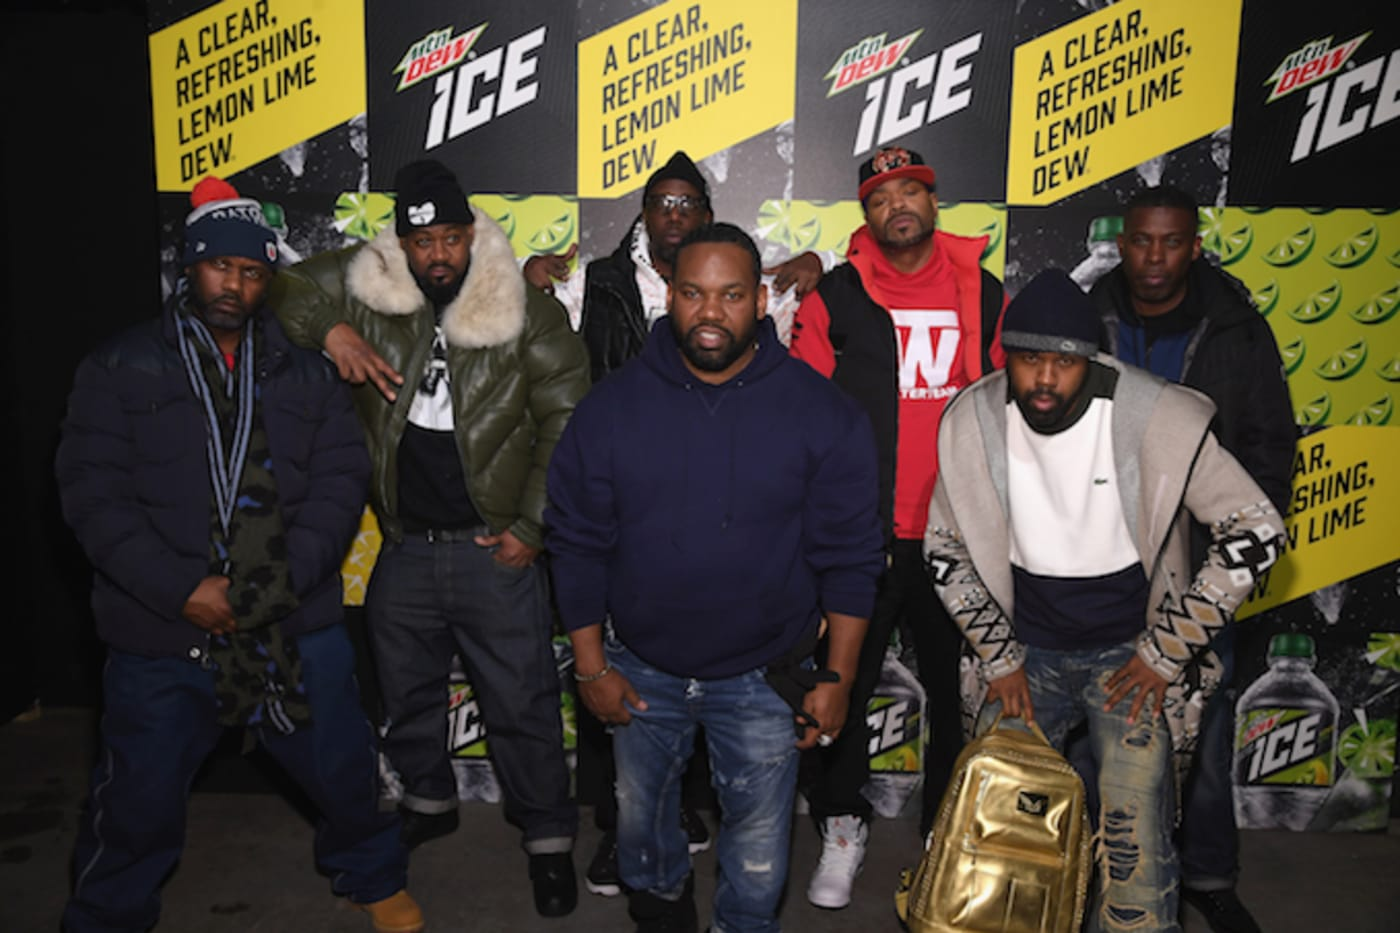 Wu Tang at the Mountain Dew Ice Launch